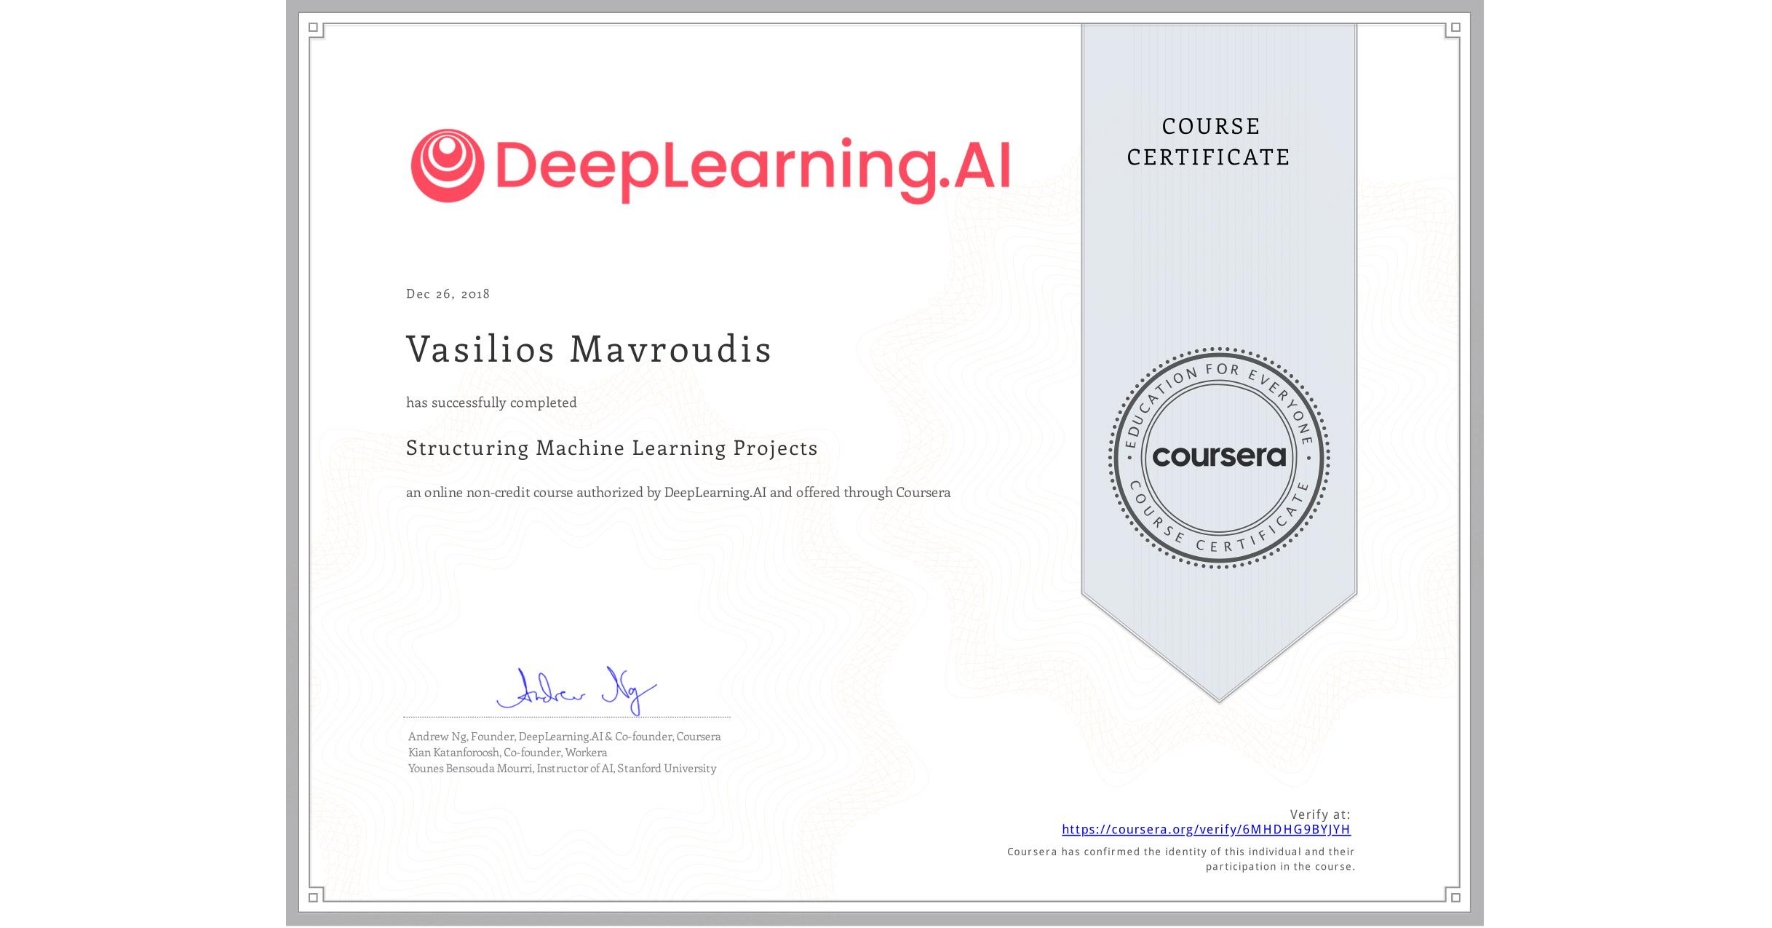 View certificate for Vasilios Mavroudis, Structuring Machine Learning Projects, an online non-credit course authorized by DeepLearning.AI and offered through Coursera